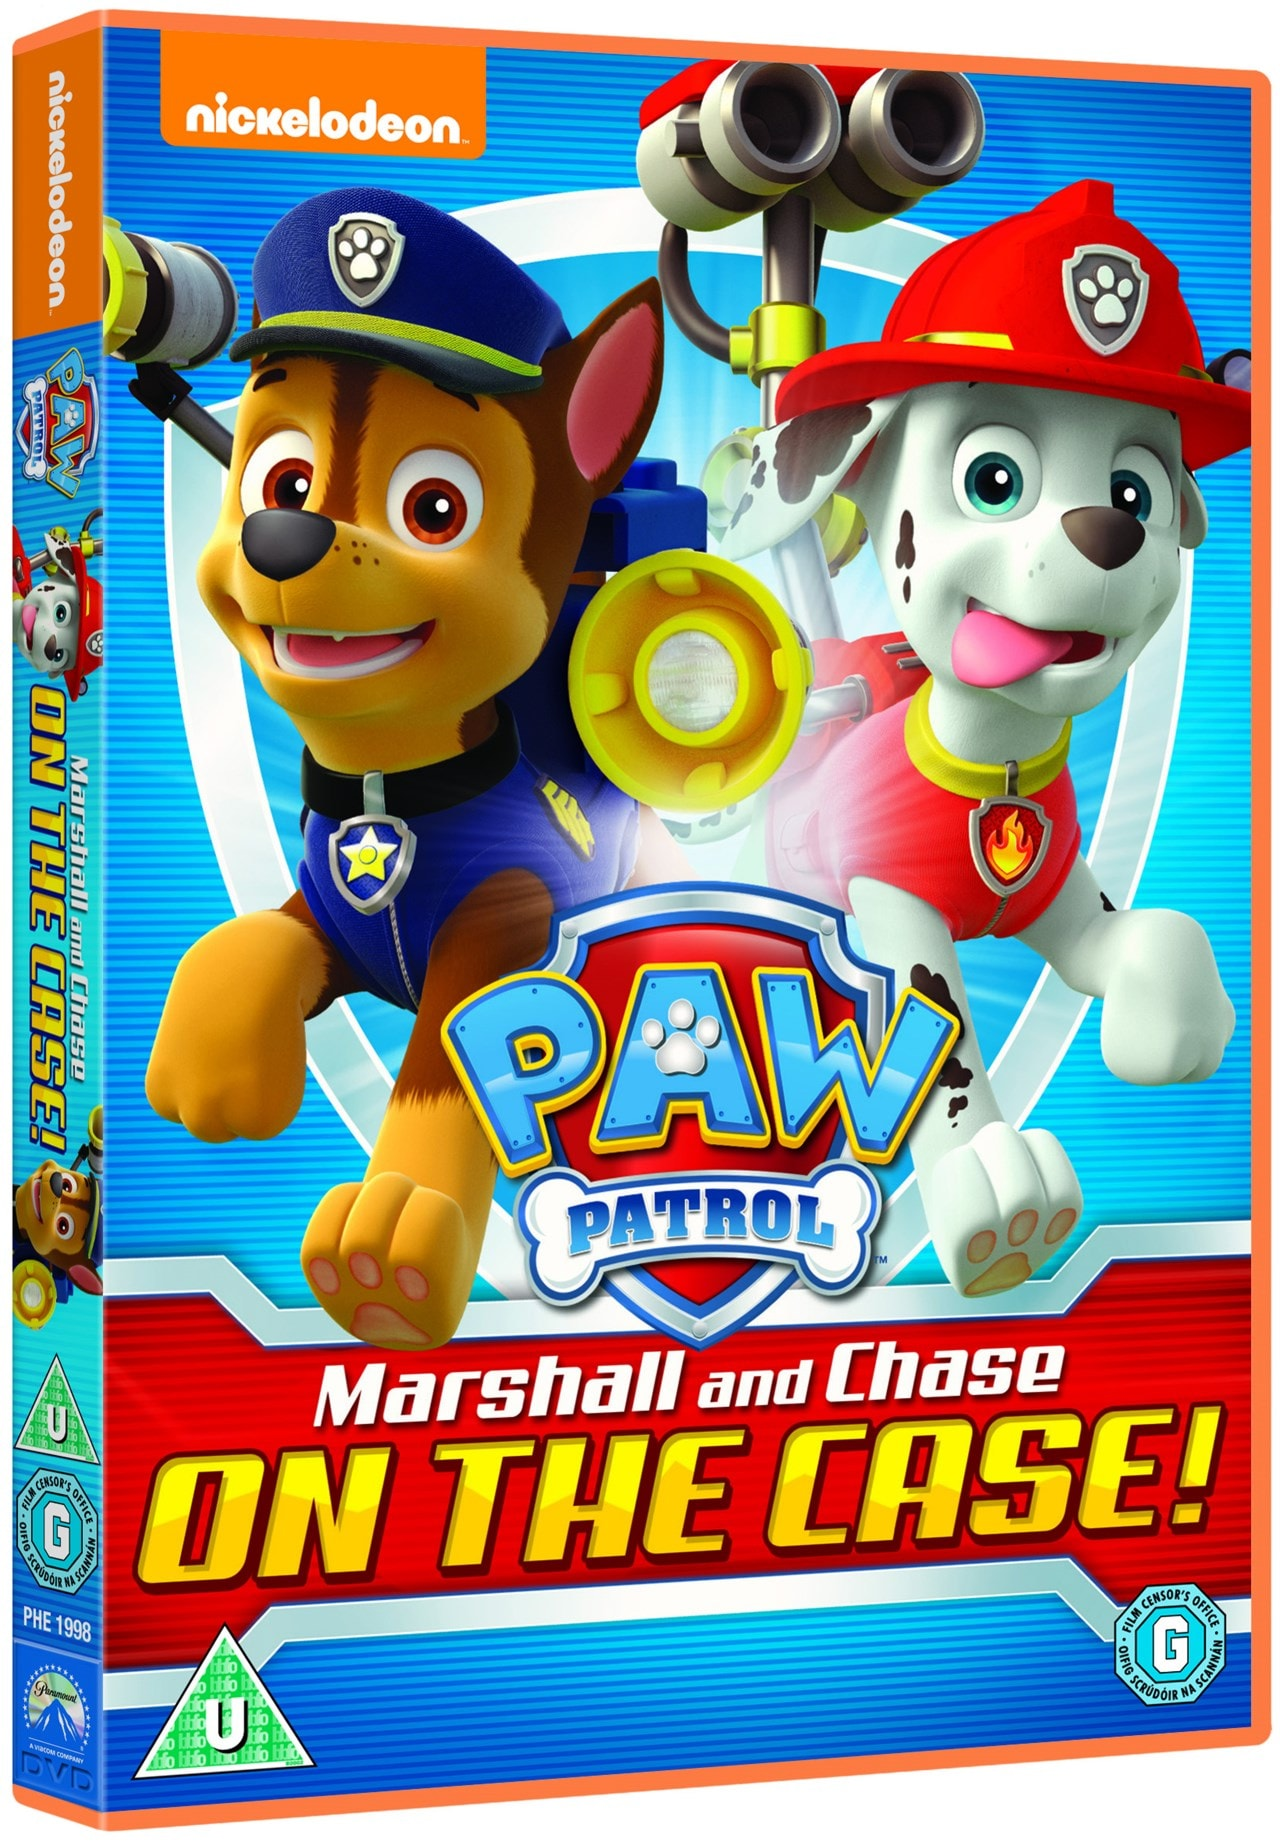 Paw Patrol: Marshall and Chase On the Case! - 2